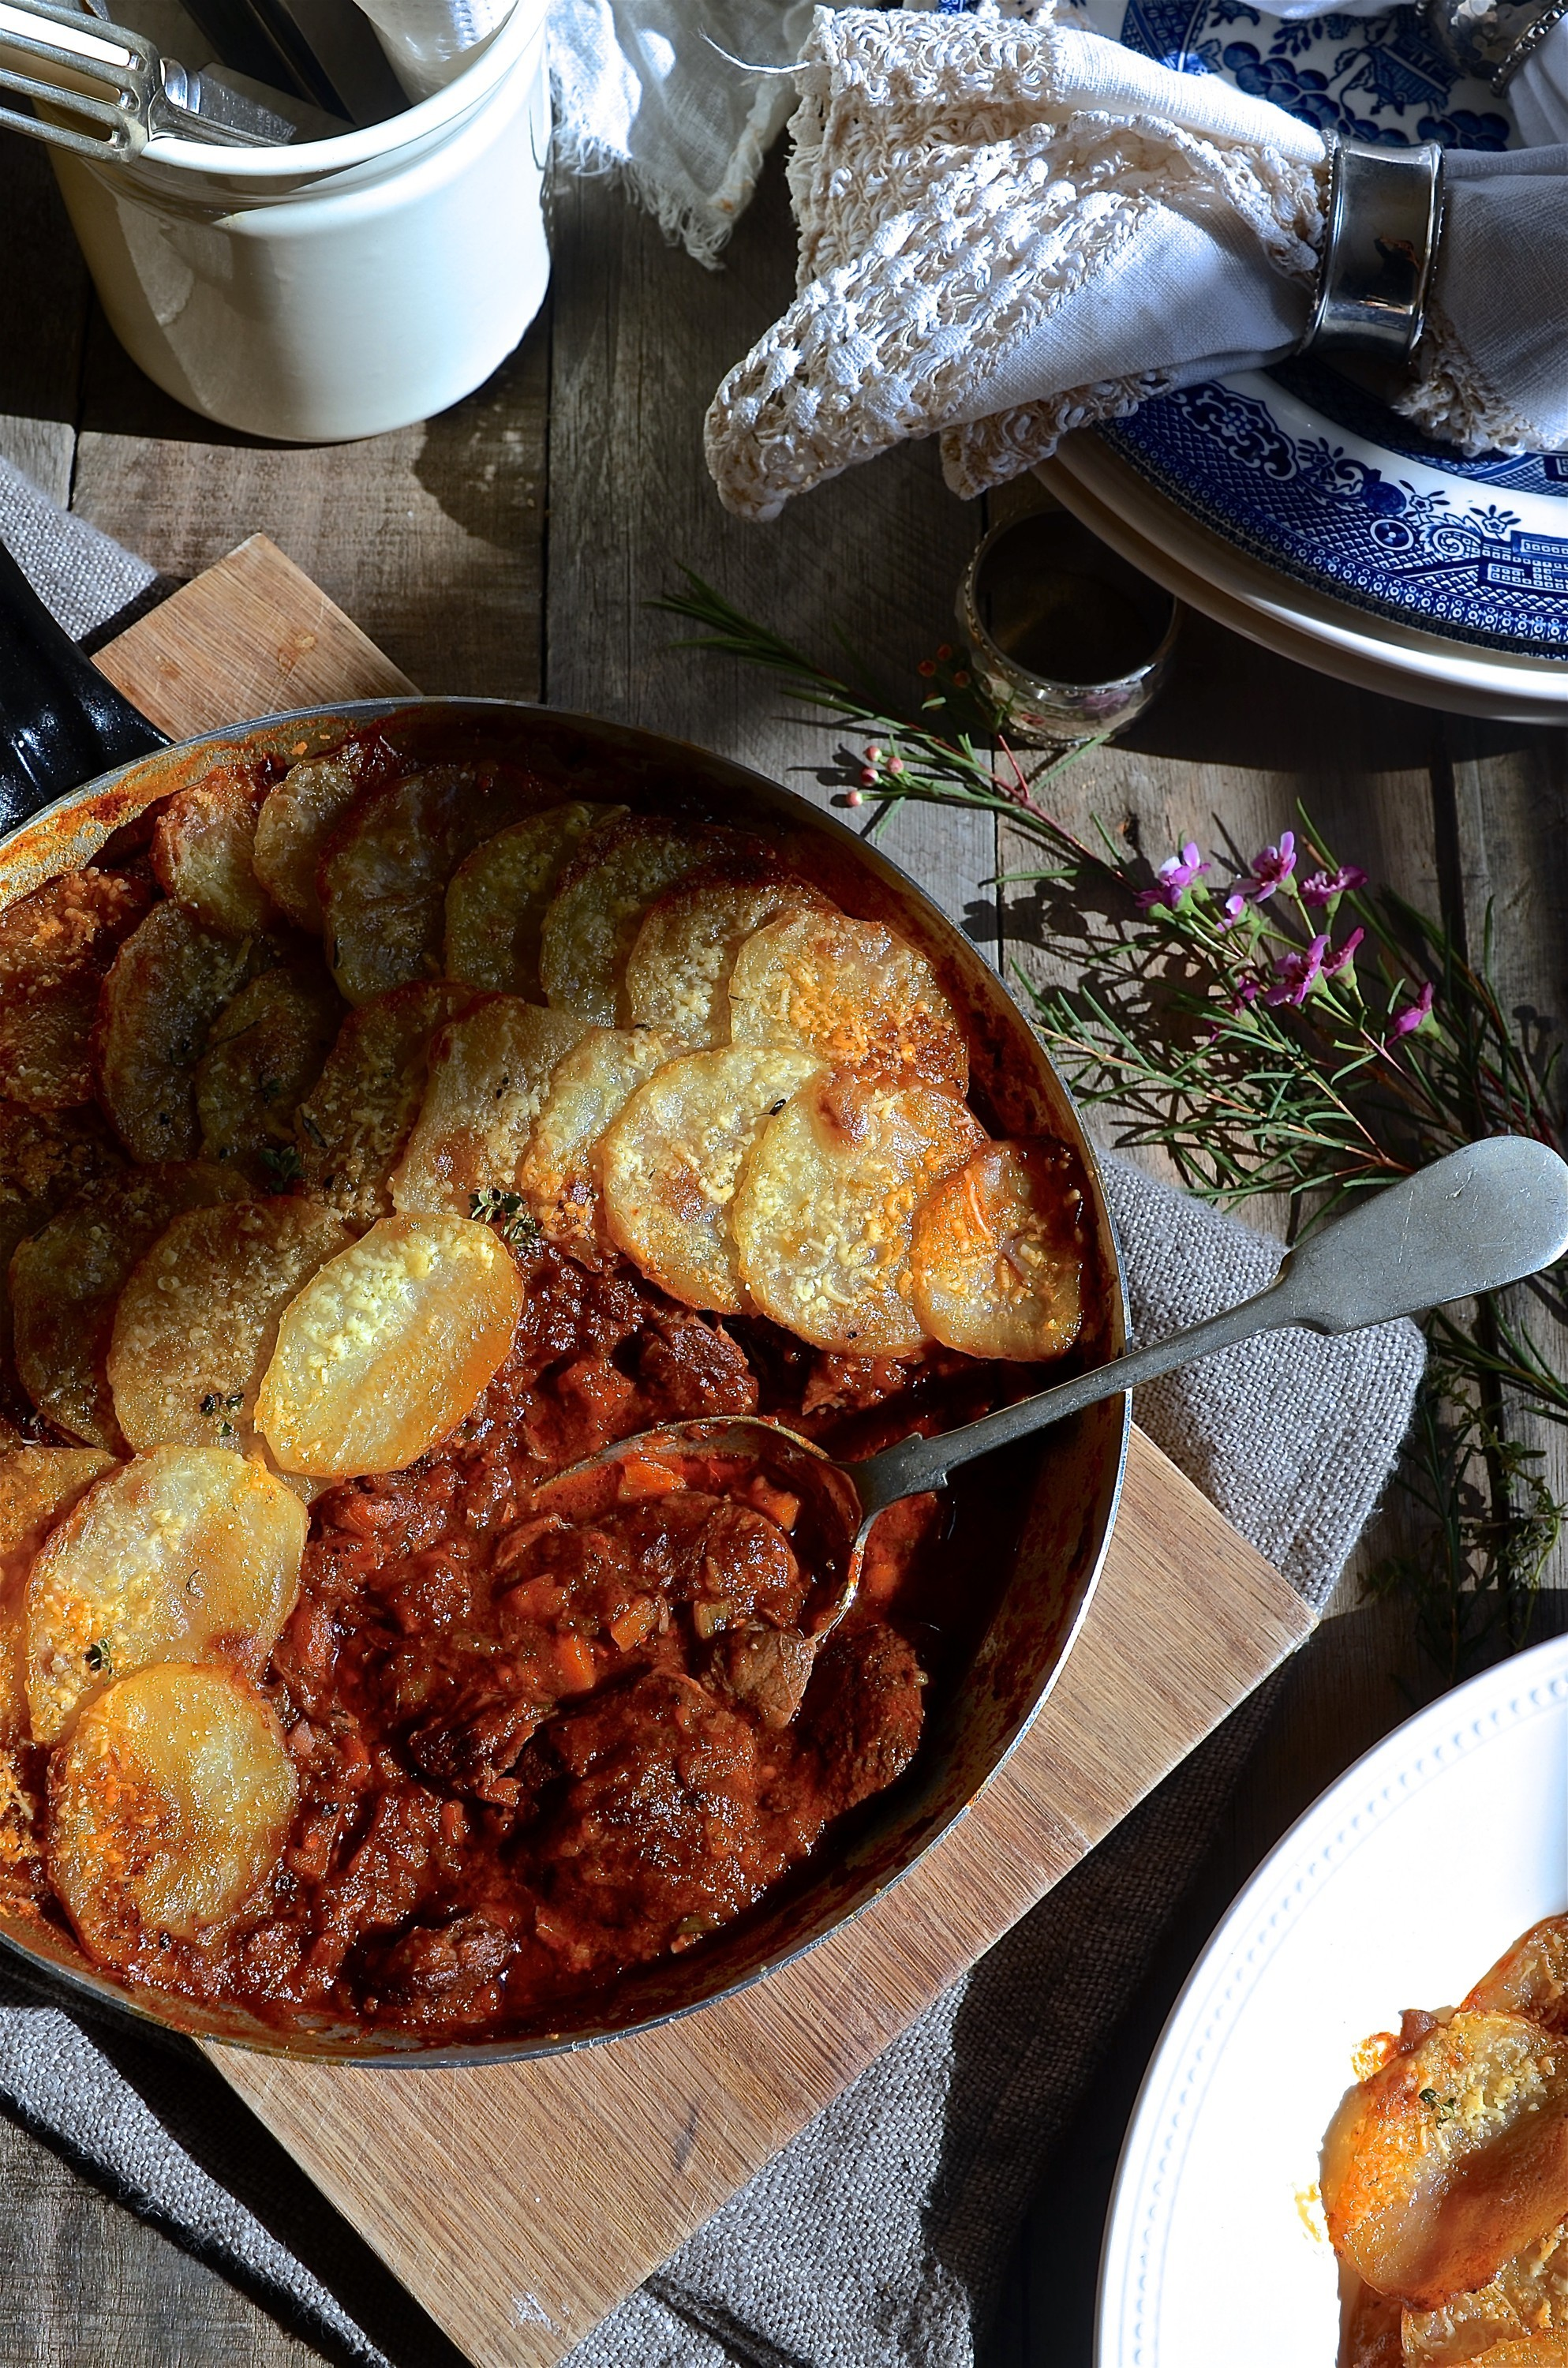 Red wine beef stew with potato gratin